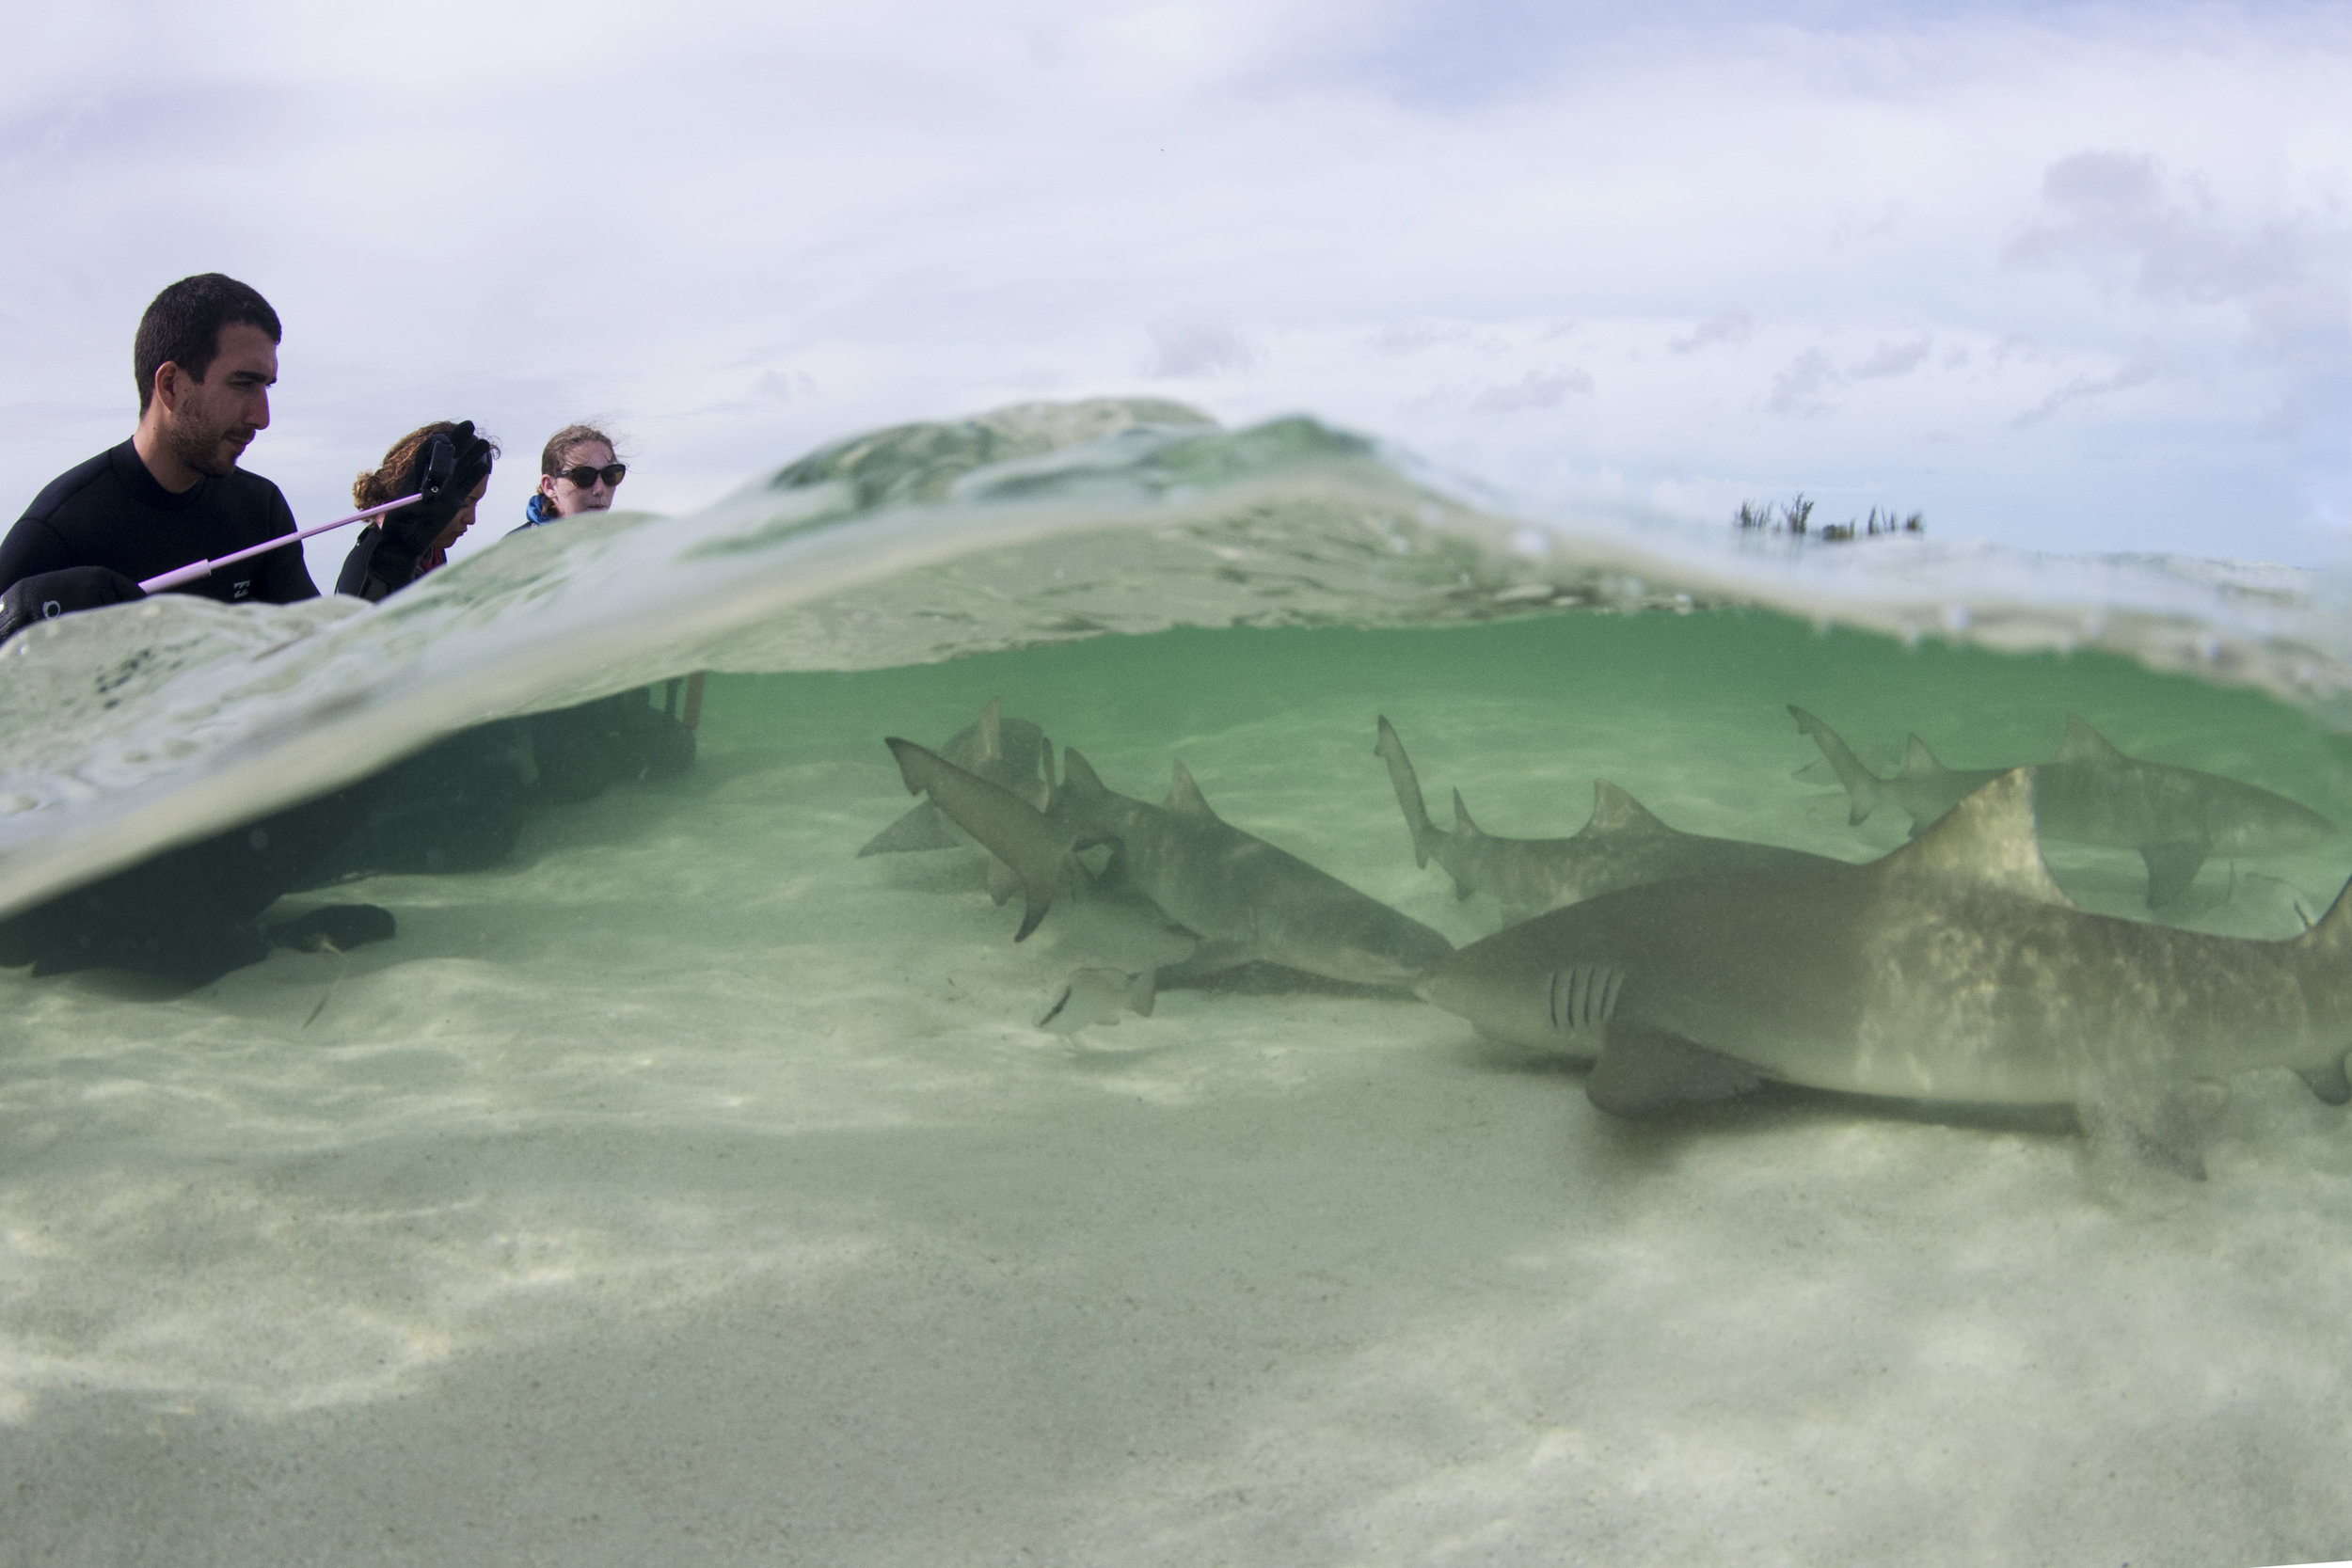 Guests enjoy over a dozen sharks in less than three feet of water